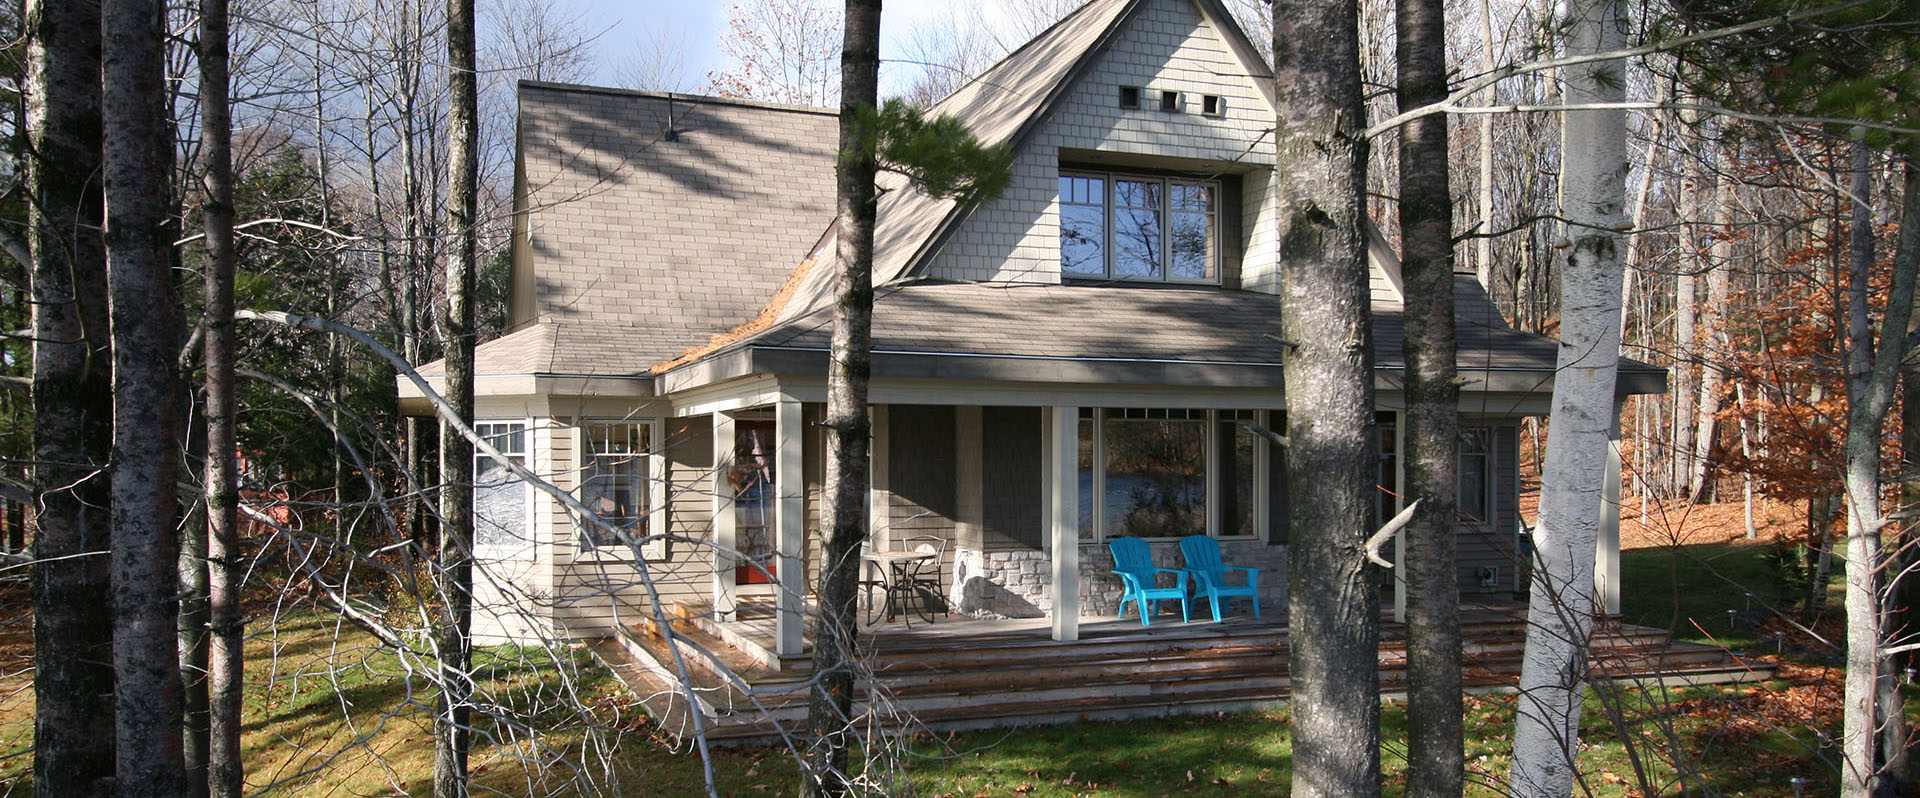 architect designed retirement home - muskoka - overlooking lake